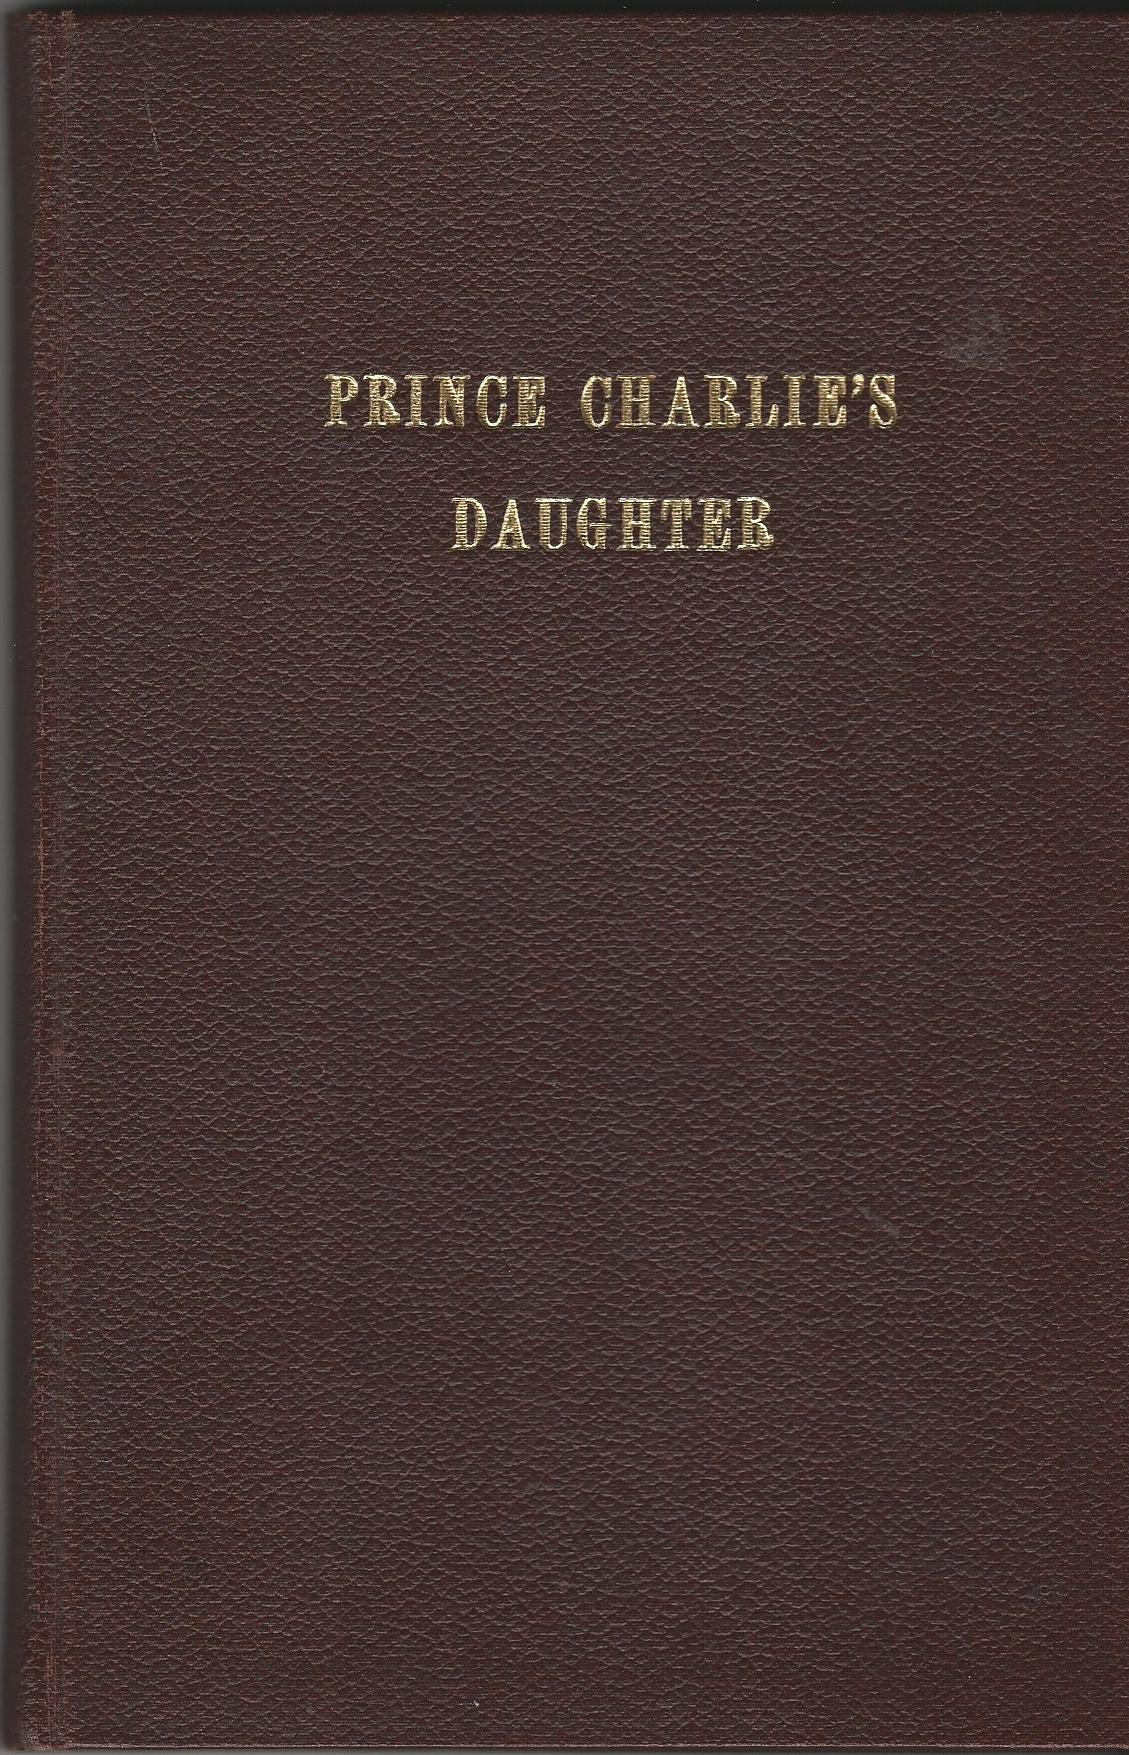 Image for Prince Charlie's Daughter being the Life and Letters of Charlotte of Albany